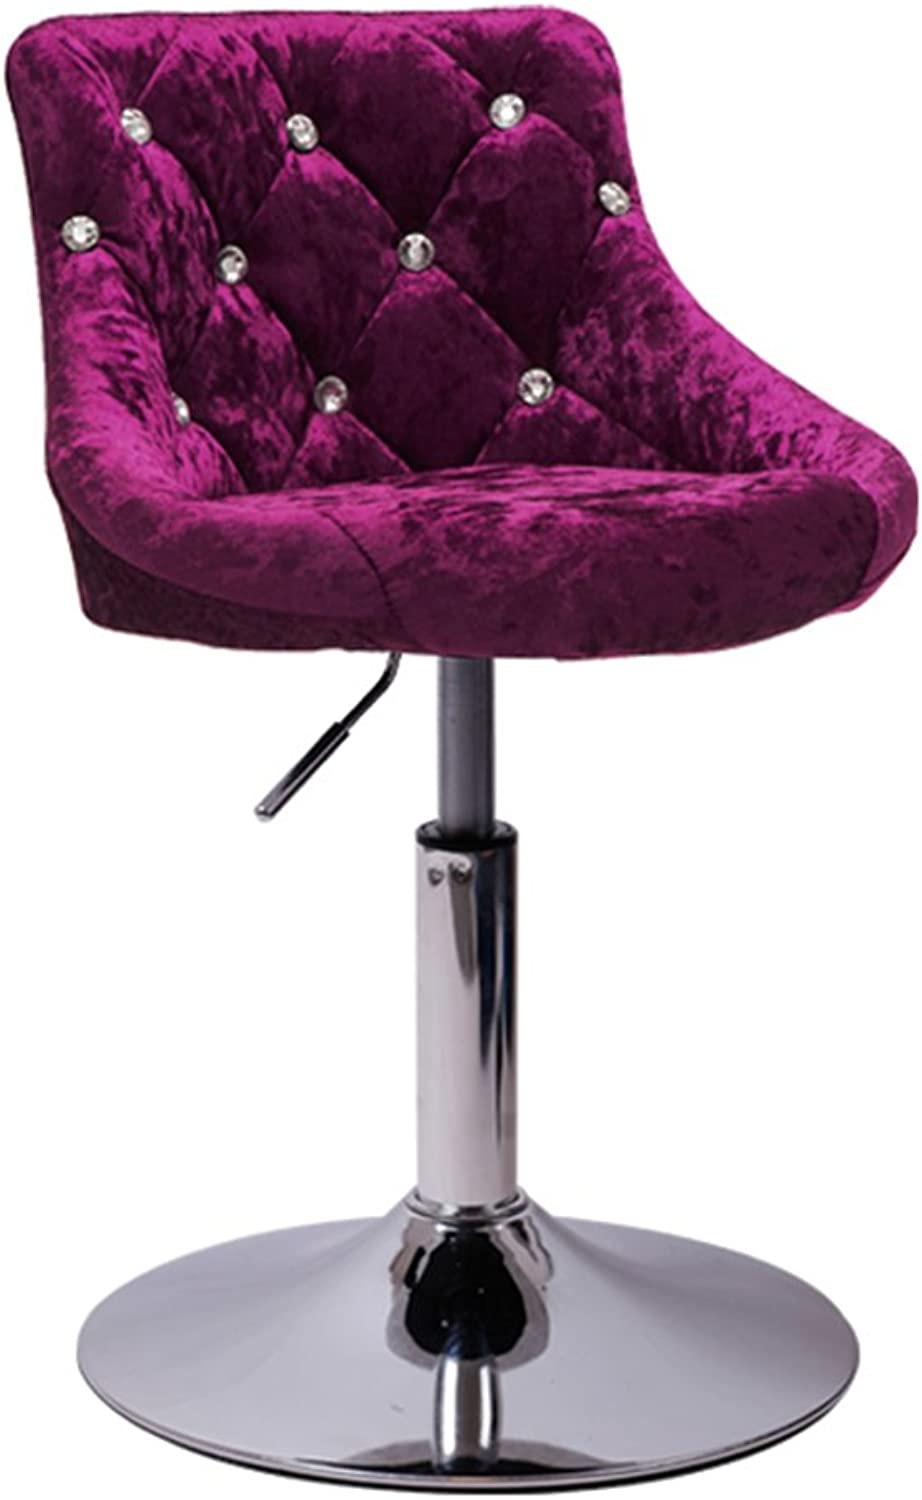 Breakfast Chairs Home Chairs Office Chairs Beauty Chairs Barstools Swivel Chairs Creative Chairs 360° redation (color   Purple, Size   A.)